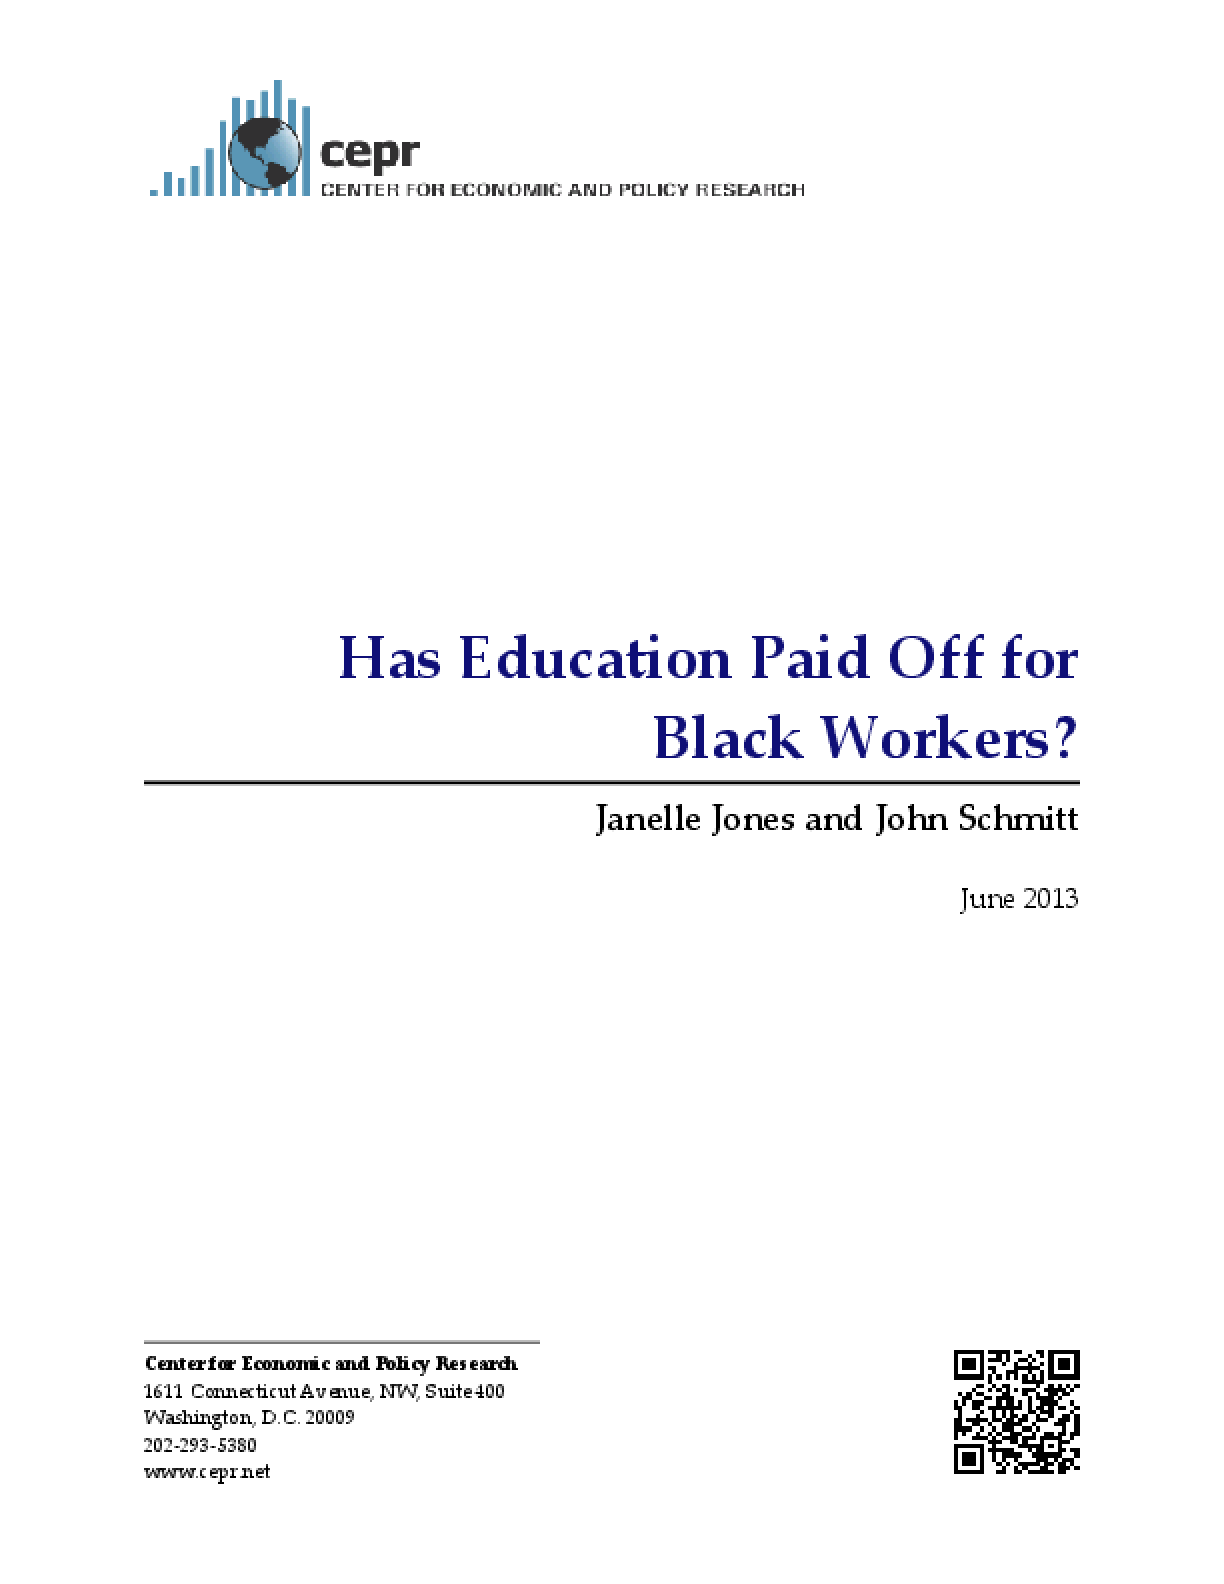 Has Education Paid Off for Black Workers?